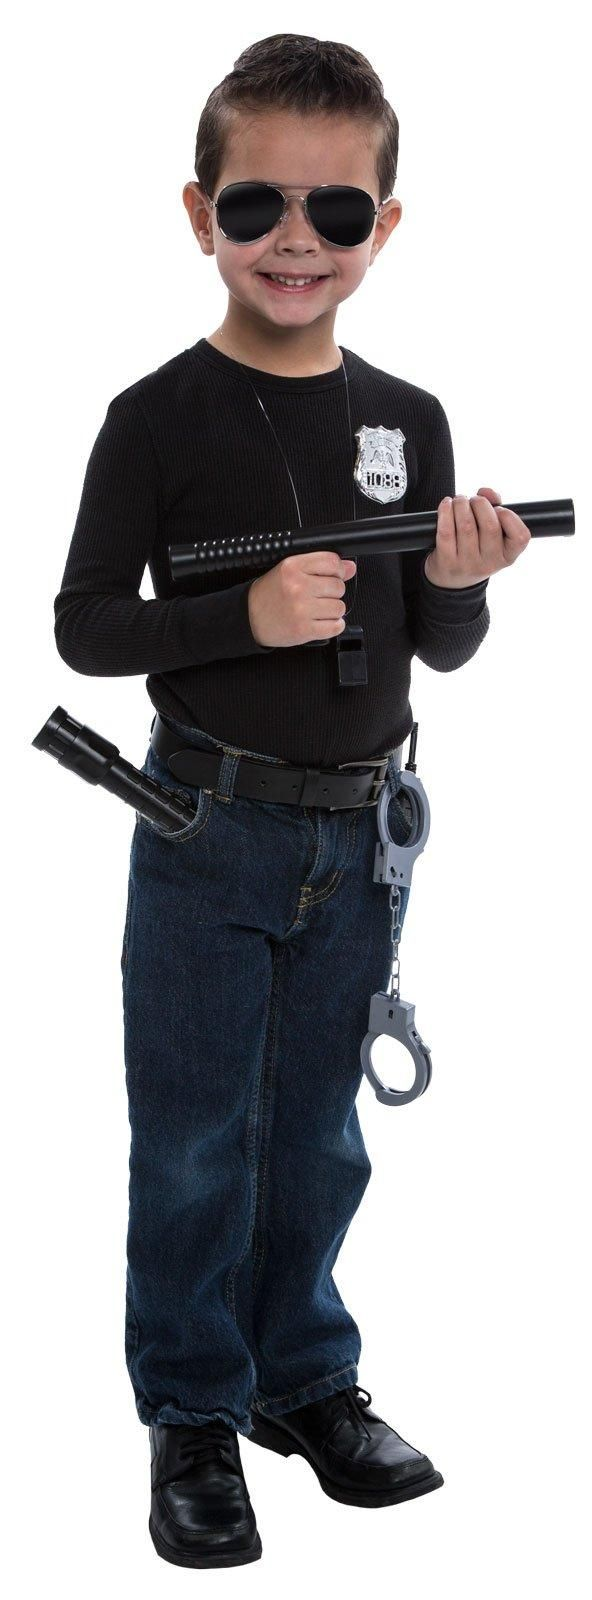 Police Accessory Kit from Buycostumes.com